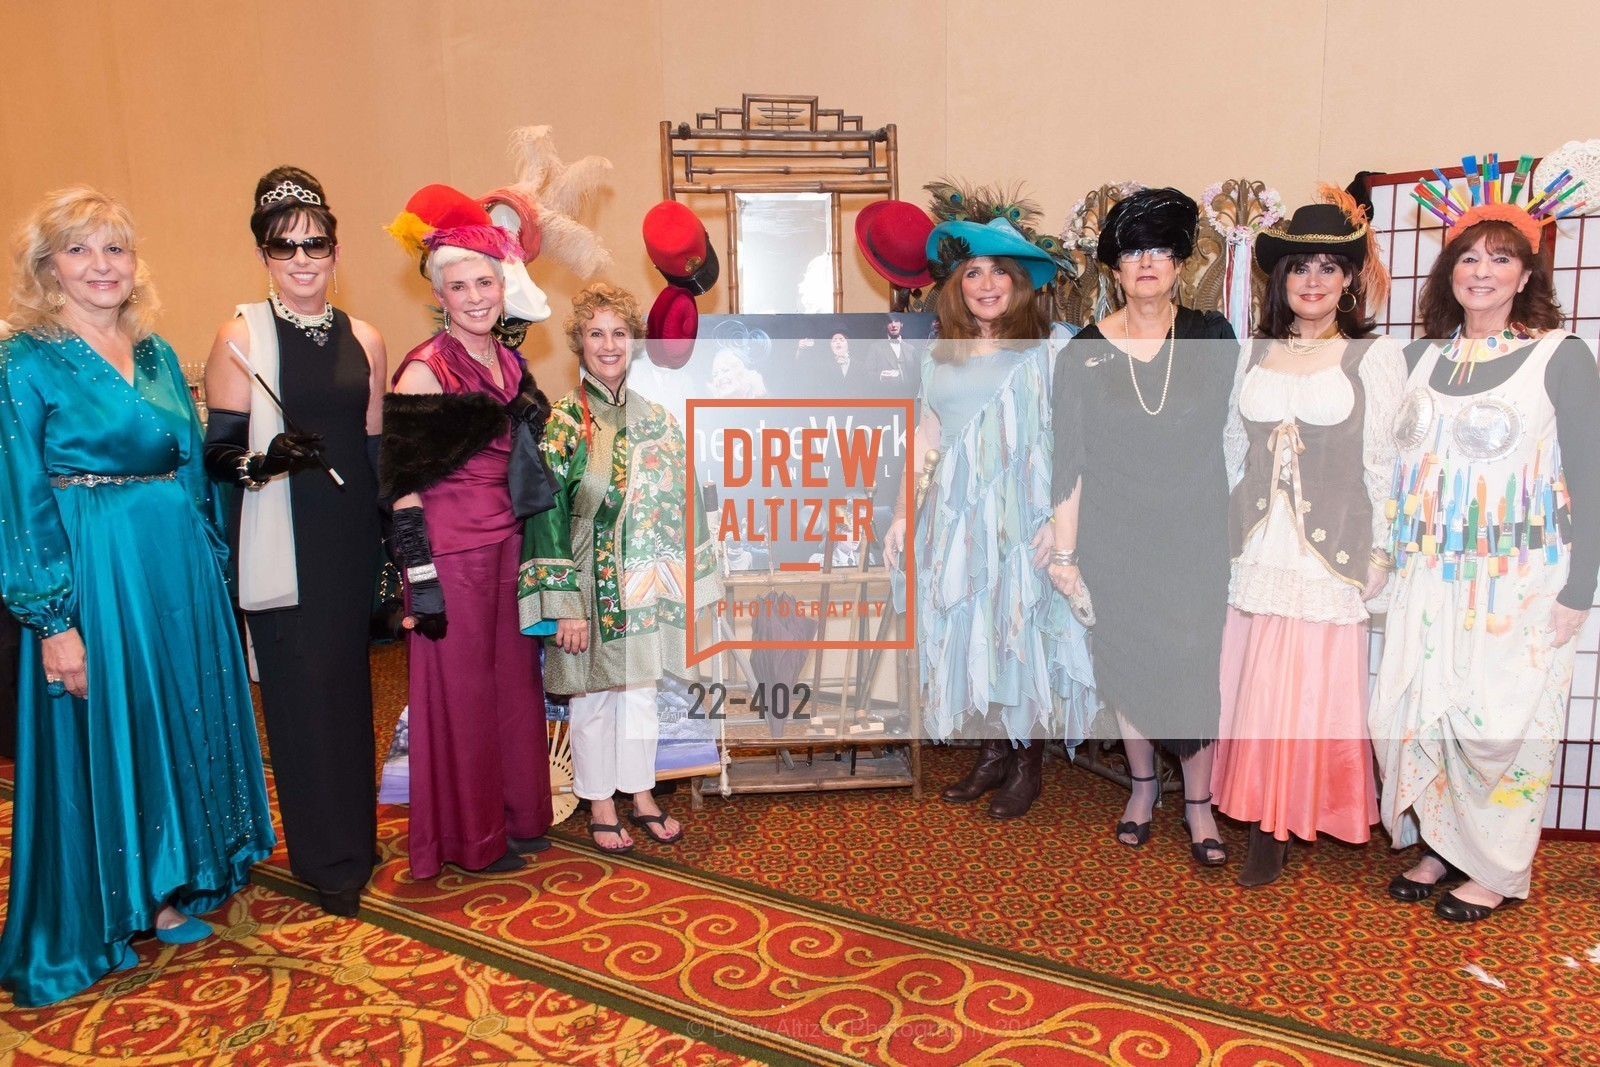 Judy Heyboer, Gayla Lorthridge Wood, Anne Hambly, Jodi Corwin, Barbara Shapiro, Nancy Ginsburg Stern, Carolyn Shutz, Jodye Friedman, Theatre Works Presents: Anything Goes, Santa Clara Marriott. 2700 Mission College Blvd, October 17th, 2015,Drew Altizer, Drew Altizer Photography, full-service agency, private events, San Francisco photographer, photographer california